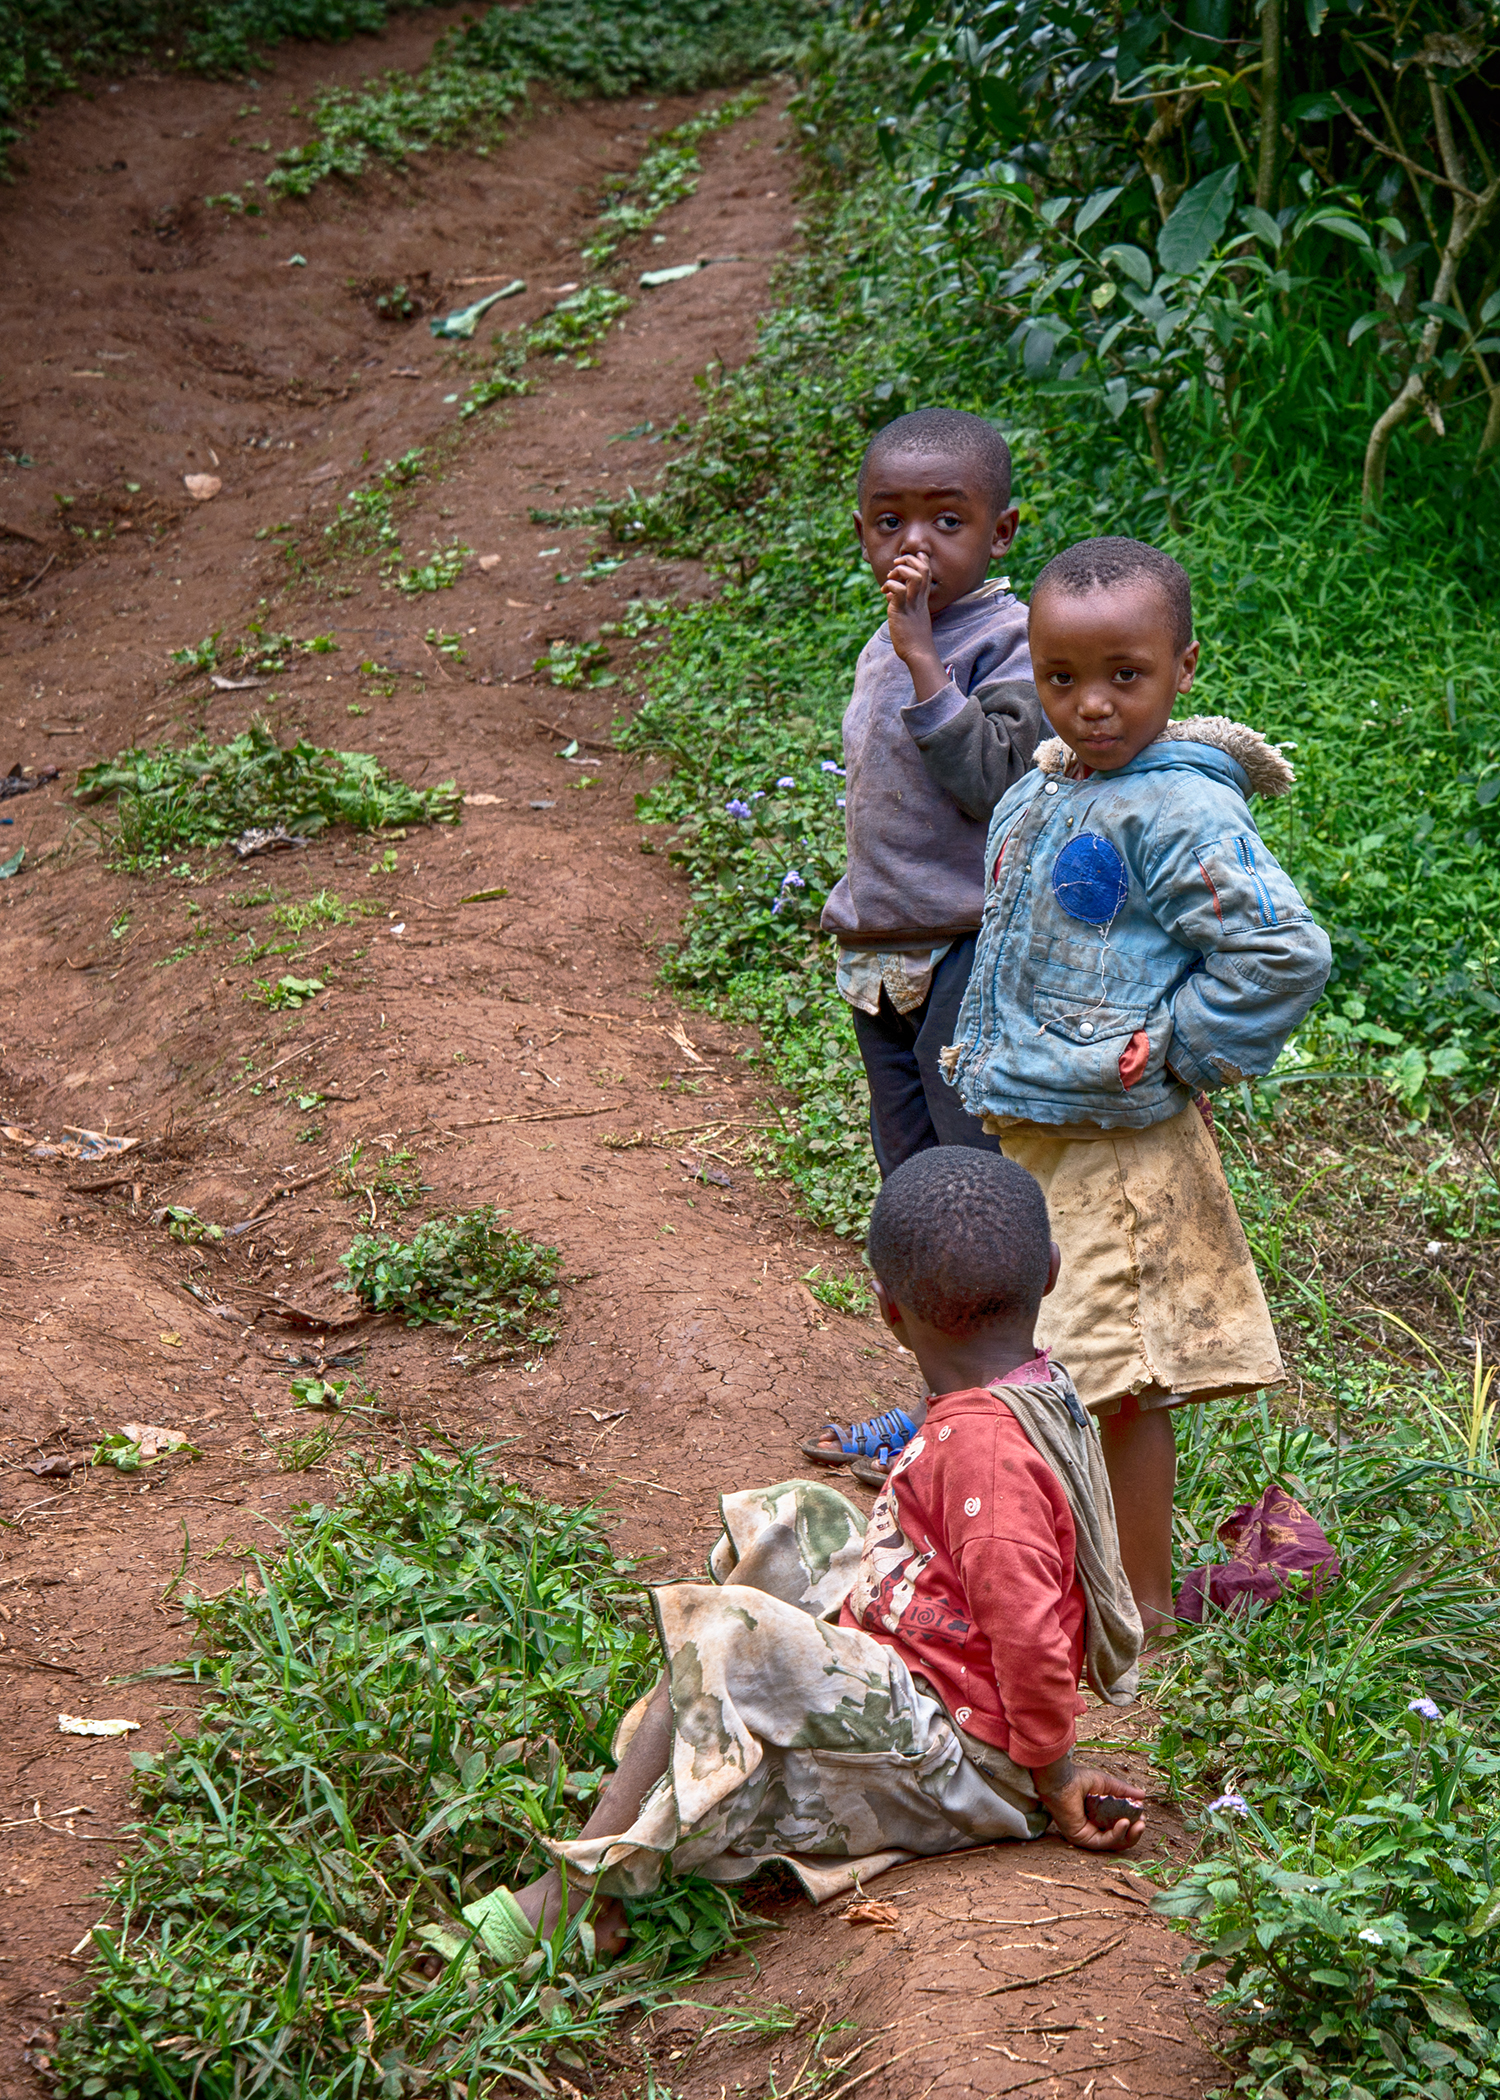 Some village children sitting by the side of the road. They were very amused and curious to watch the white people since they see so few tourists.